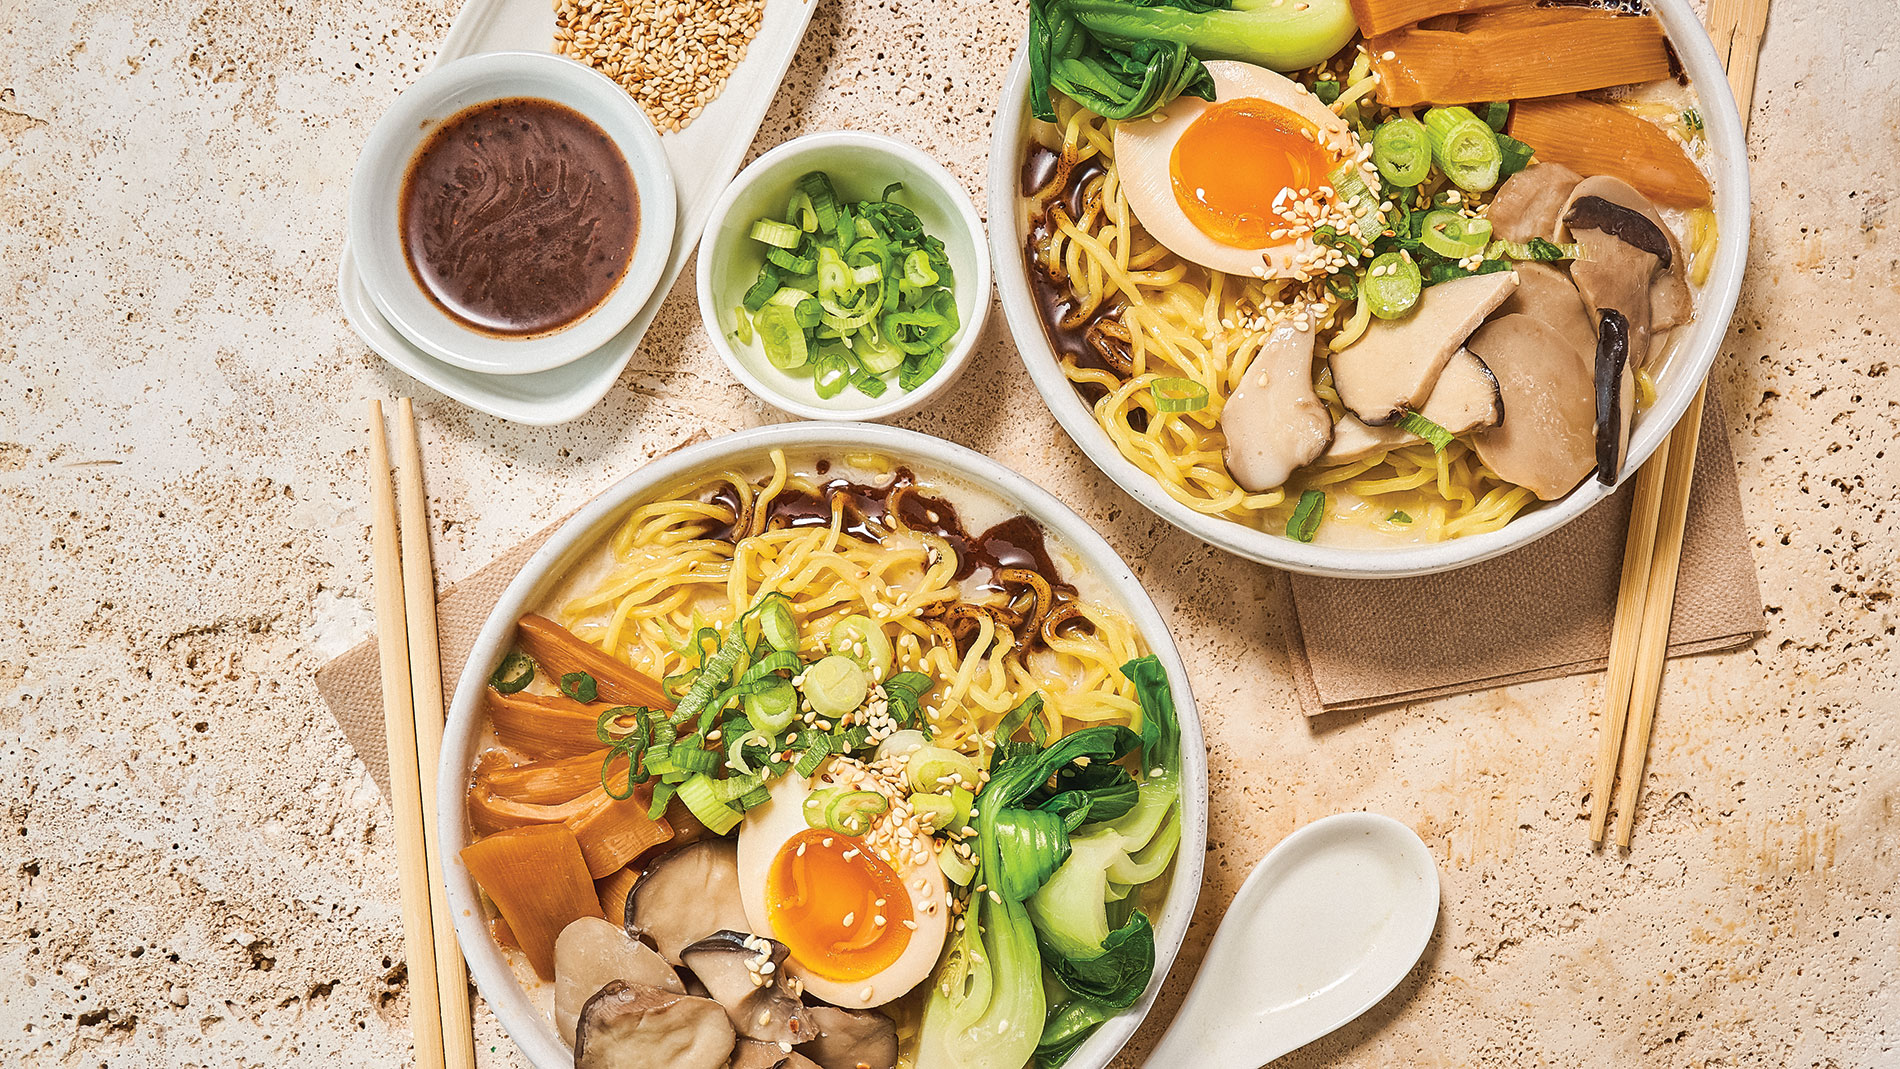 Eat this Shroomed Out ramen from Nudo House